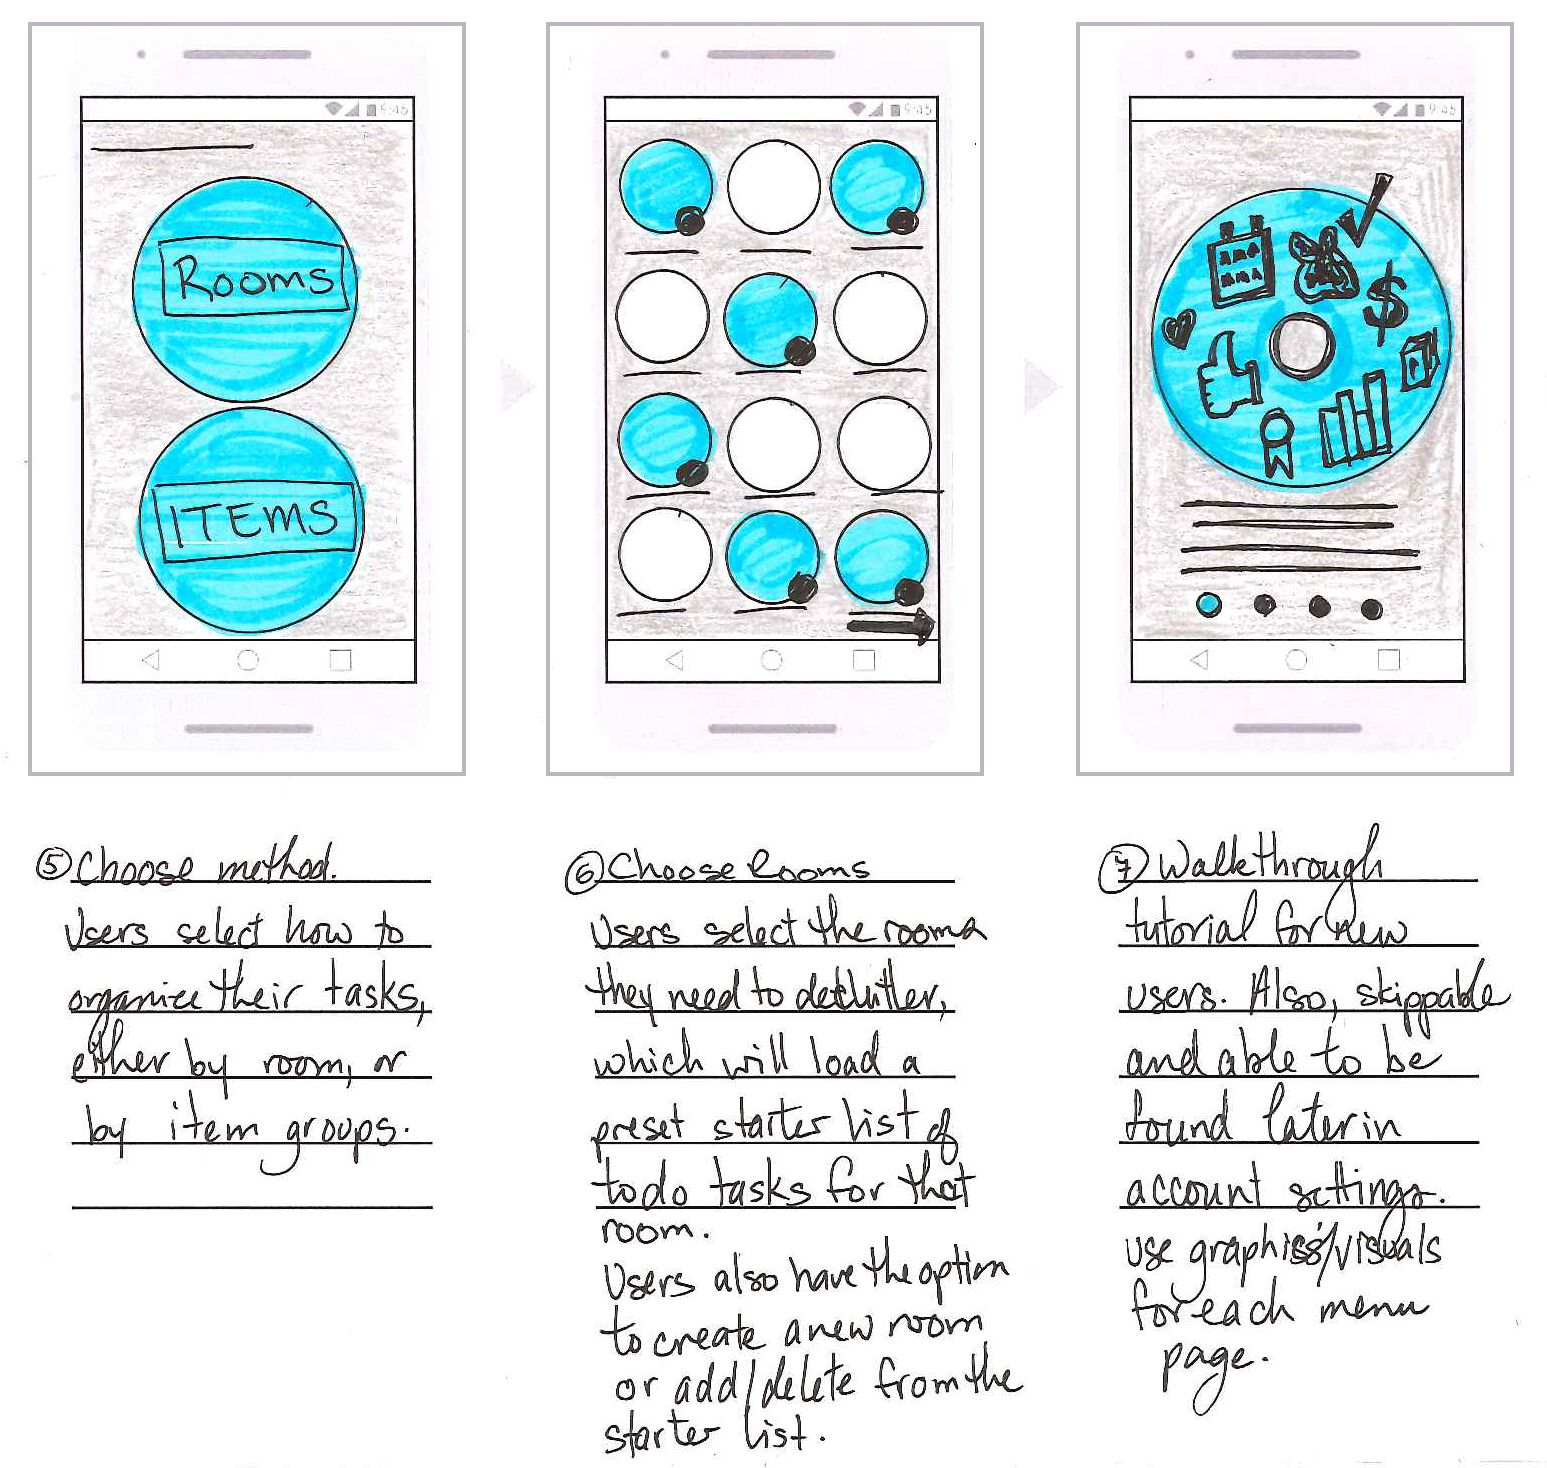 wireframes_Page_2.png